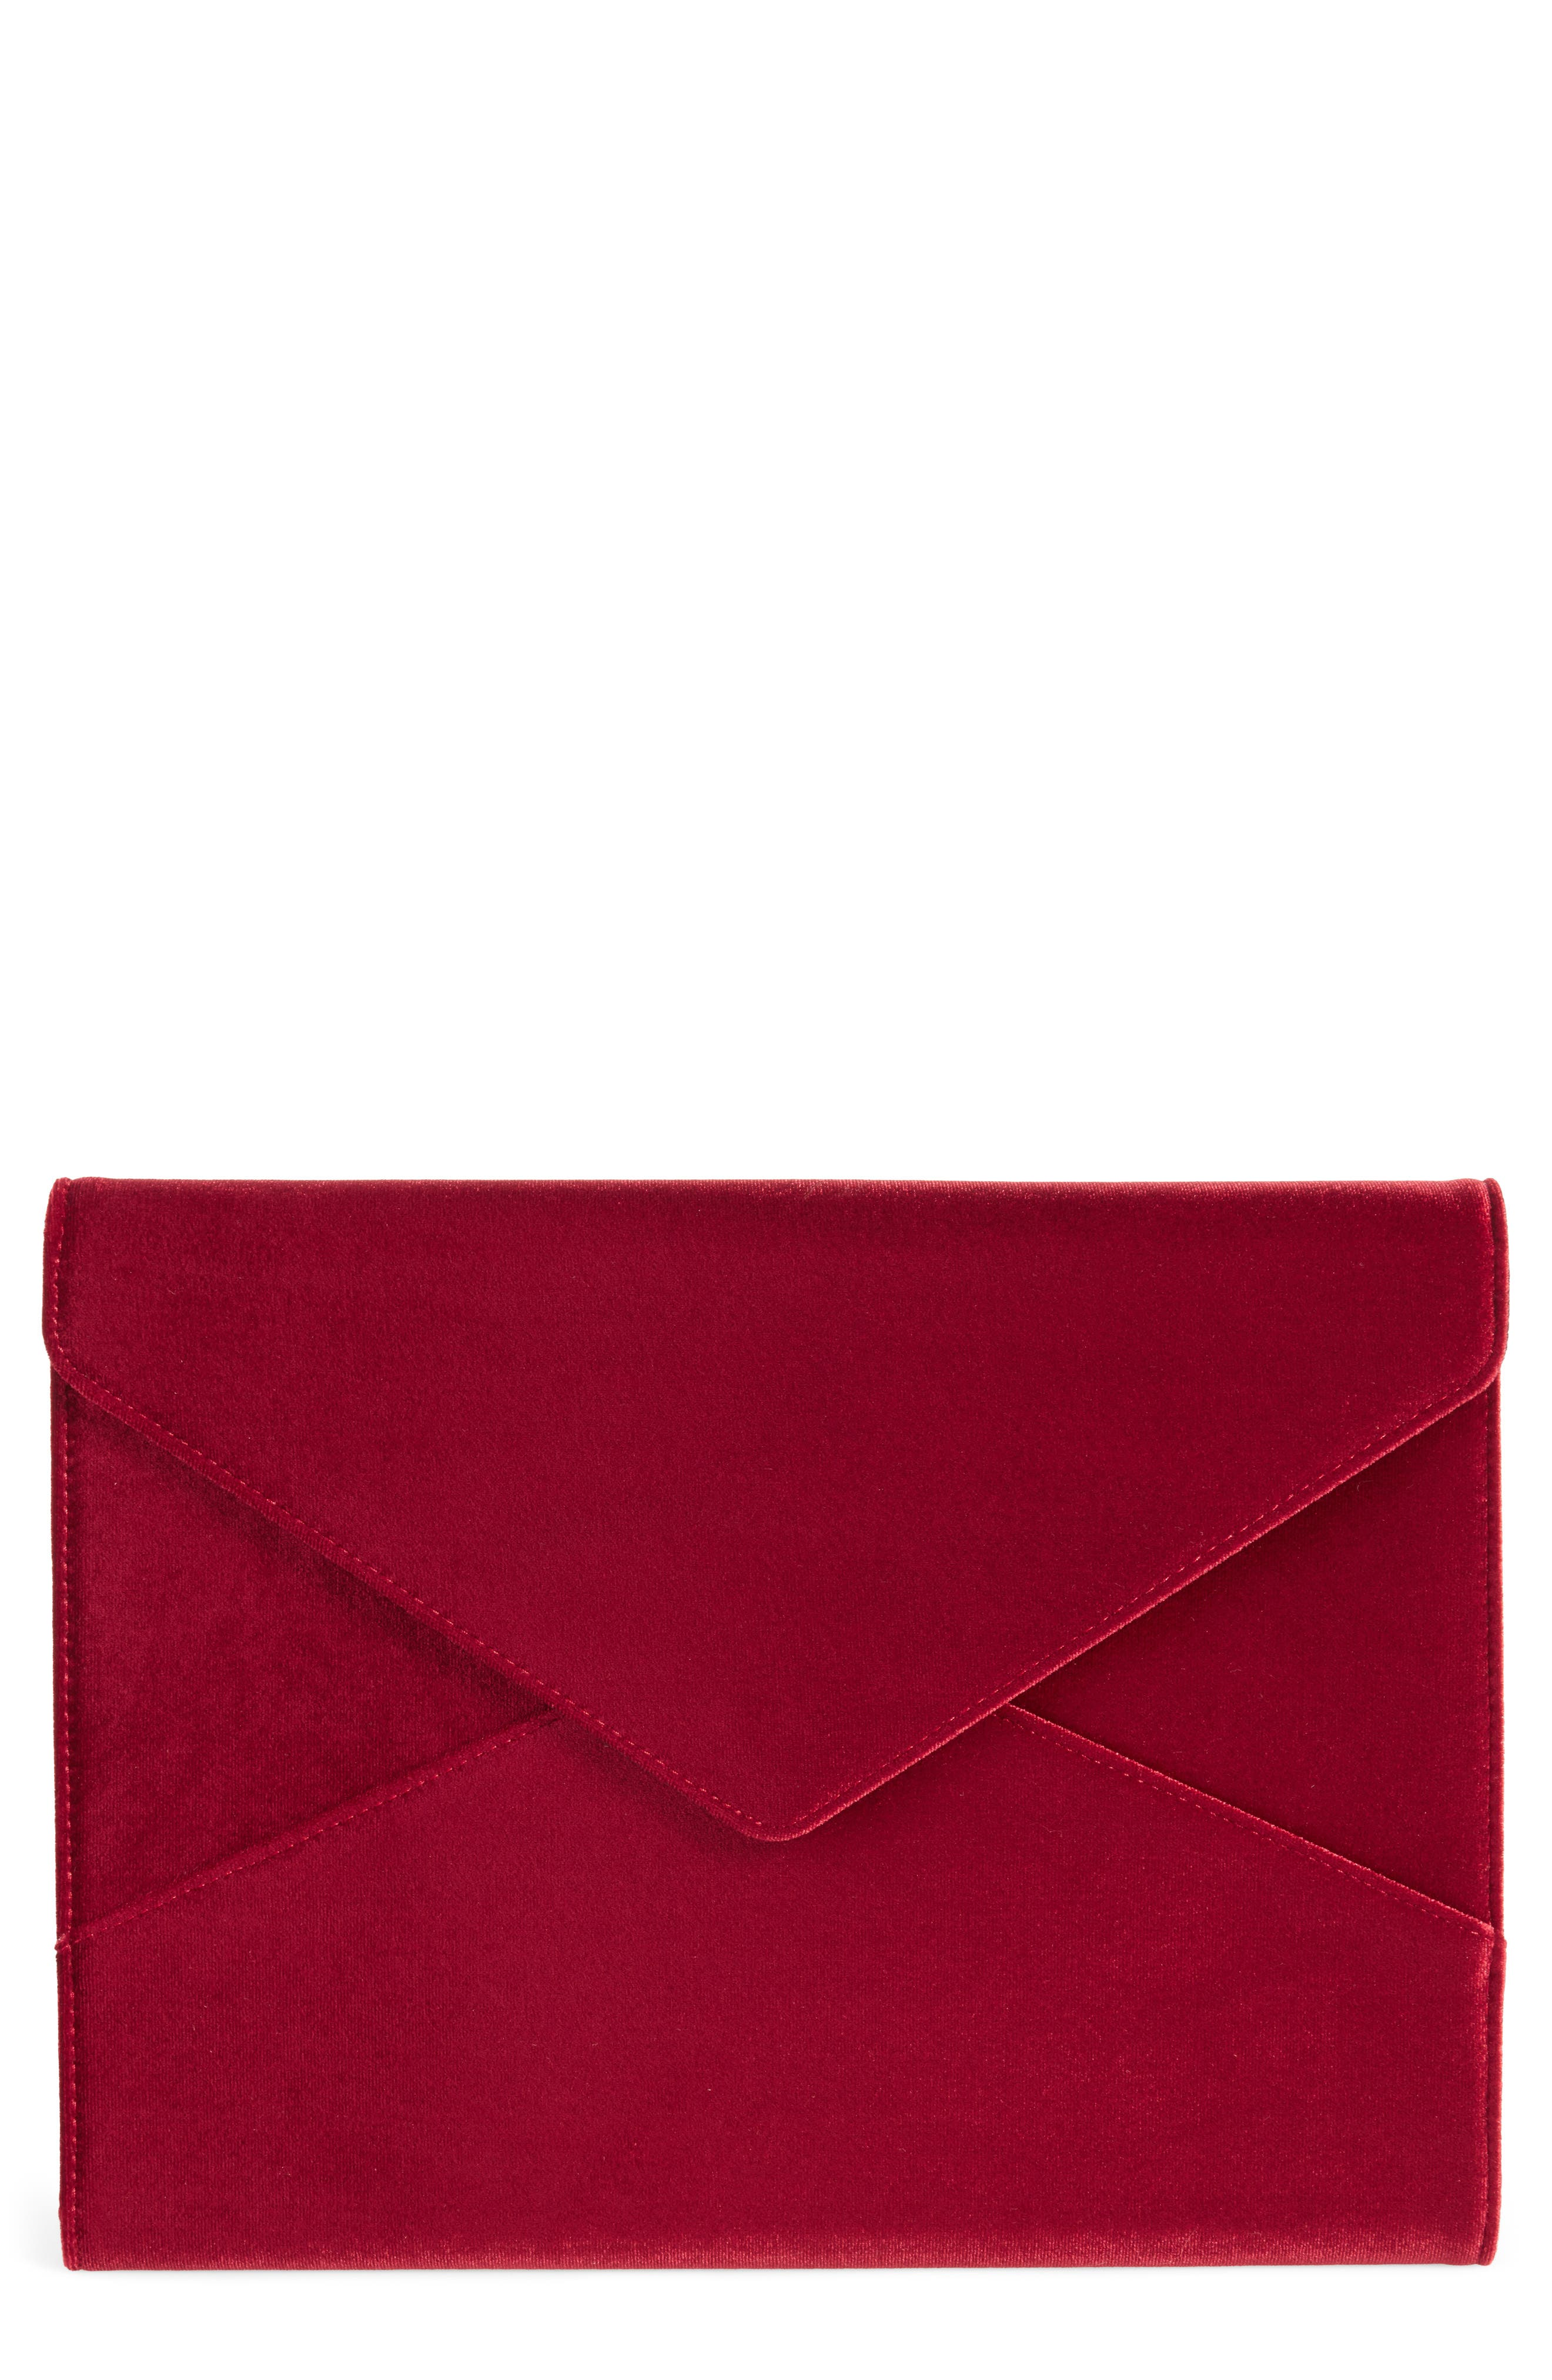 Red Velvet Laptop Clutch,                         Main,                         color, Red